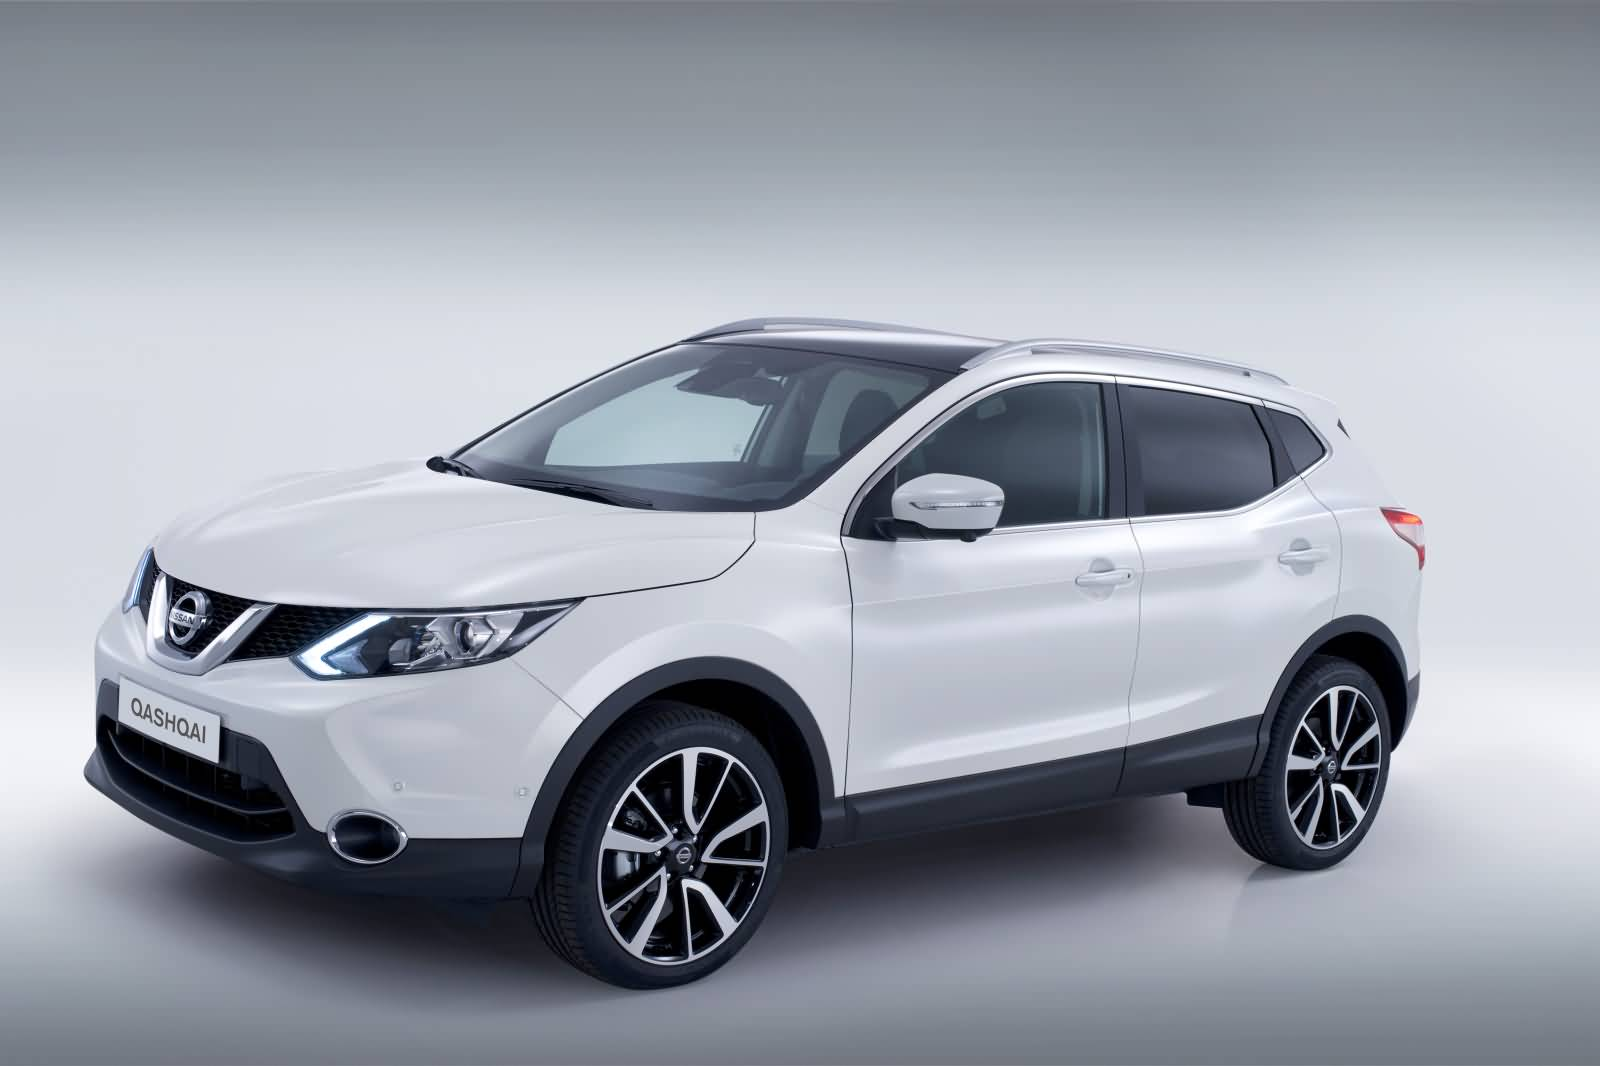 modellbeschreibung ber den nissan qashqai 2014. Black Bedroom Furniture Sets. Home Design Ideas